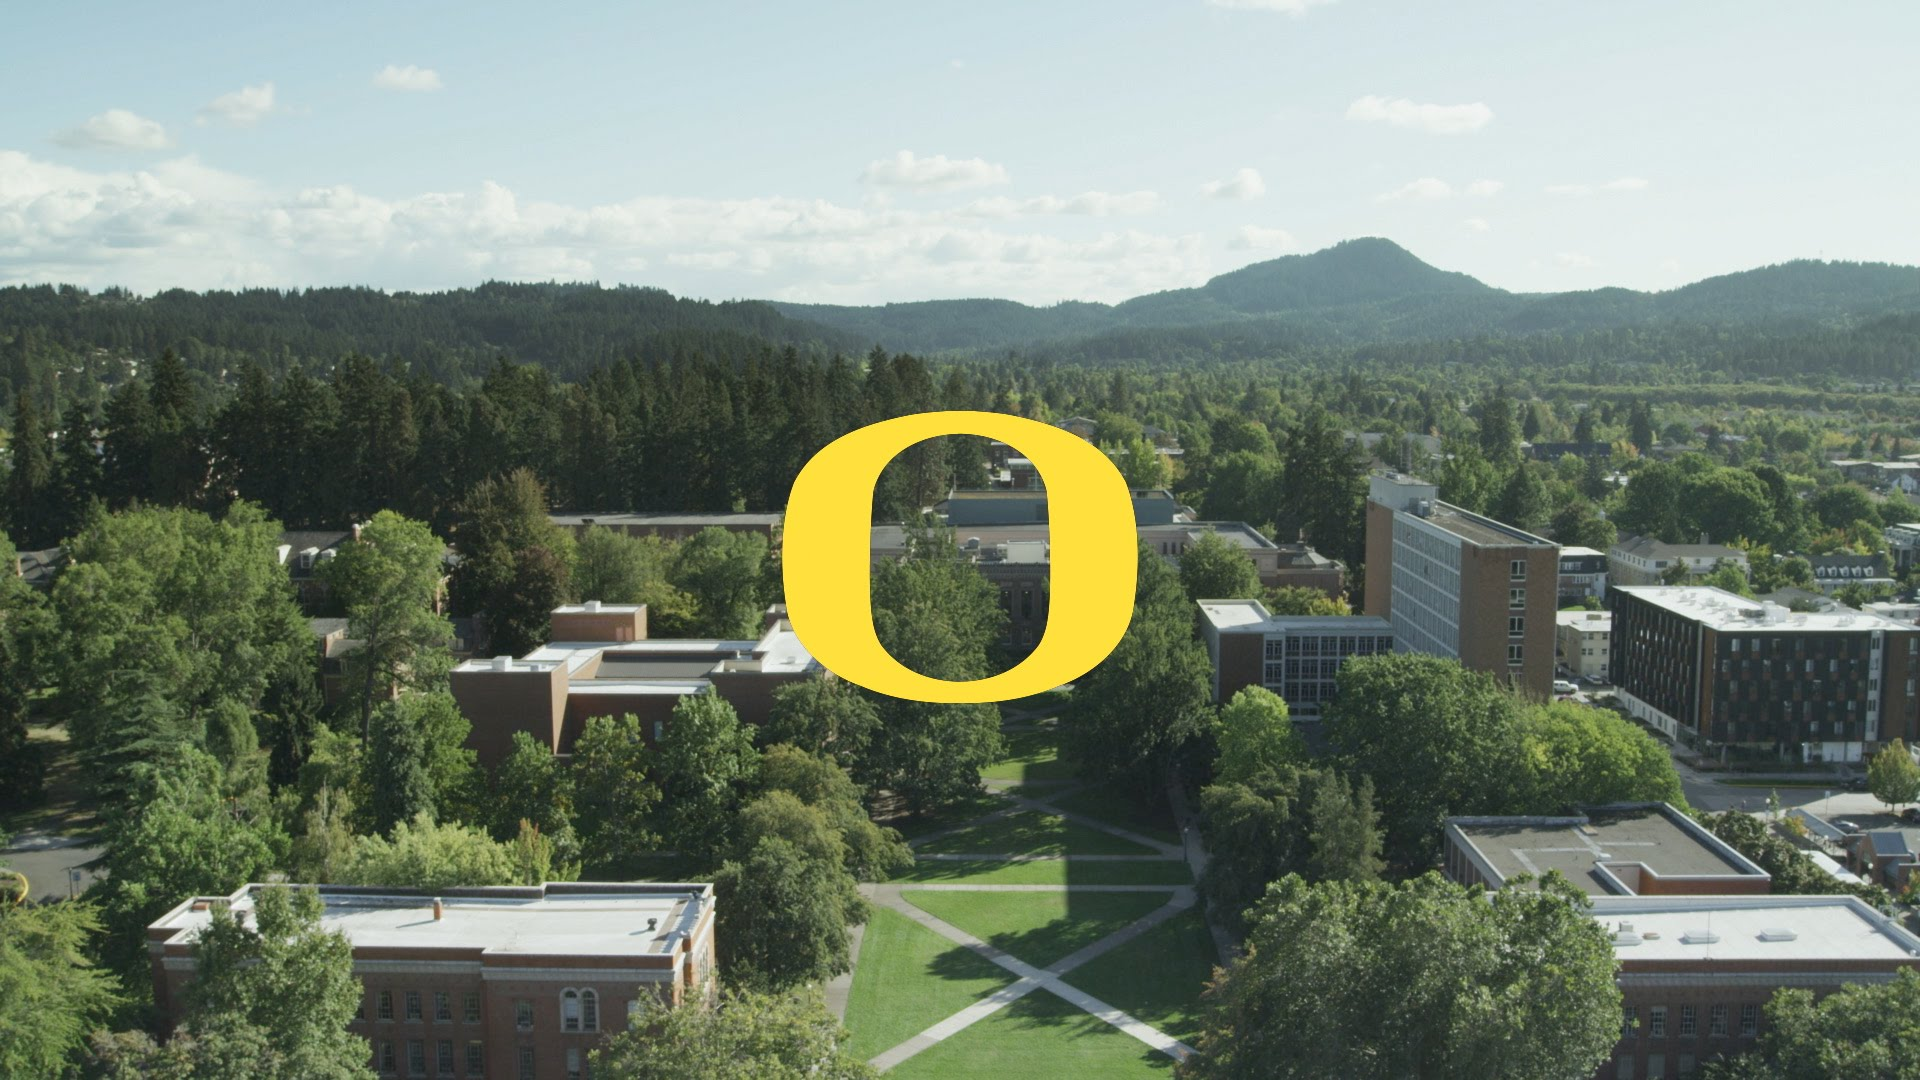 Courtesy of the University of Oregon